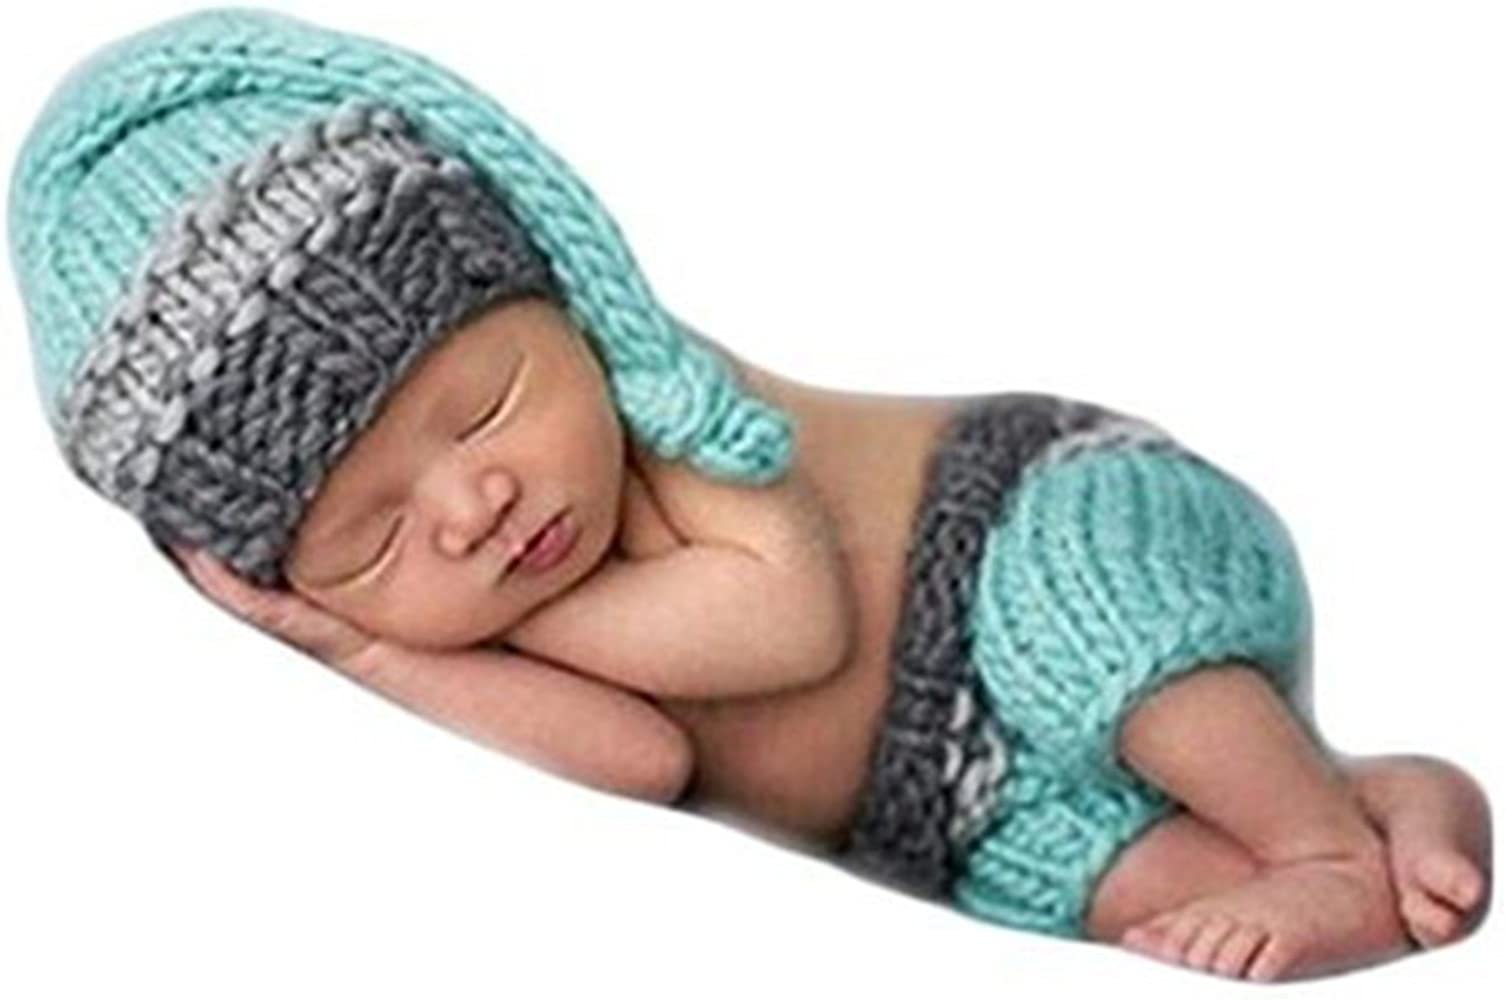 Gray Pilot Set for Newborn Photography Props Crochet Knitted Baby Boys Costume